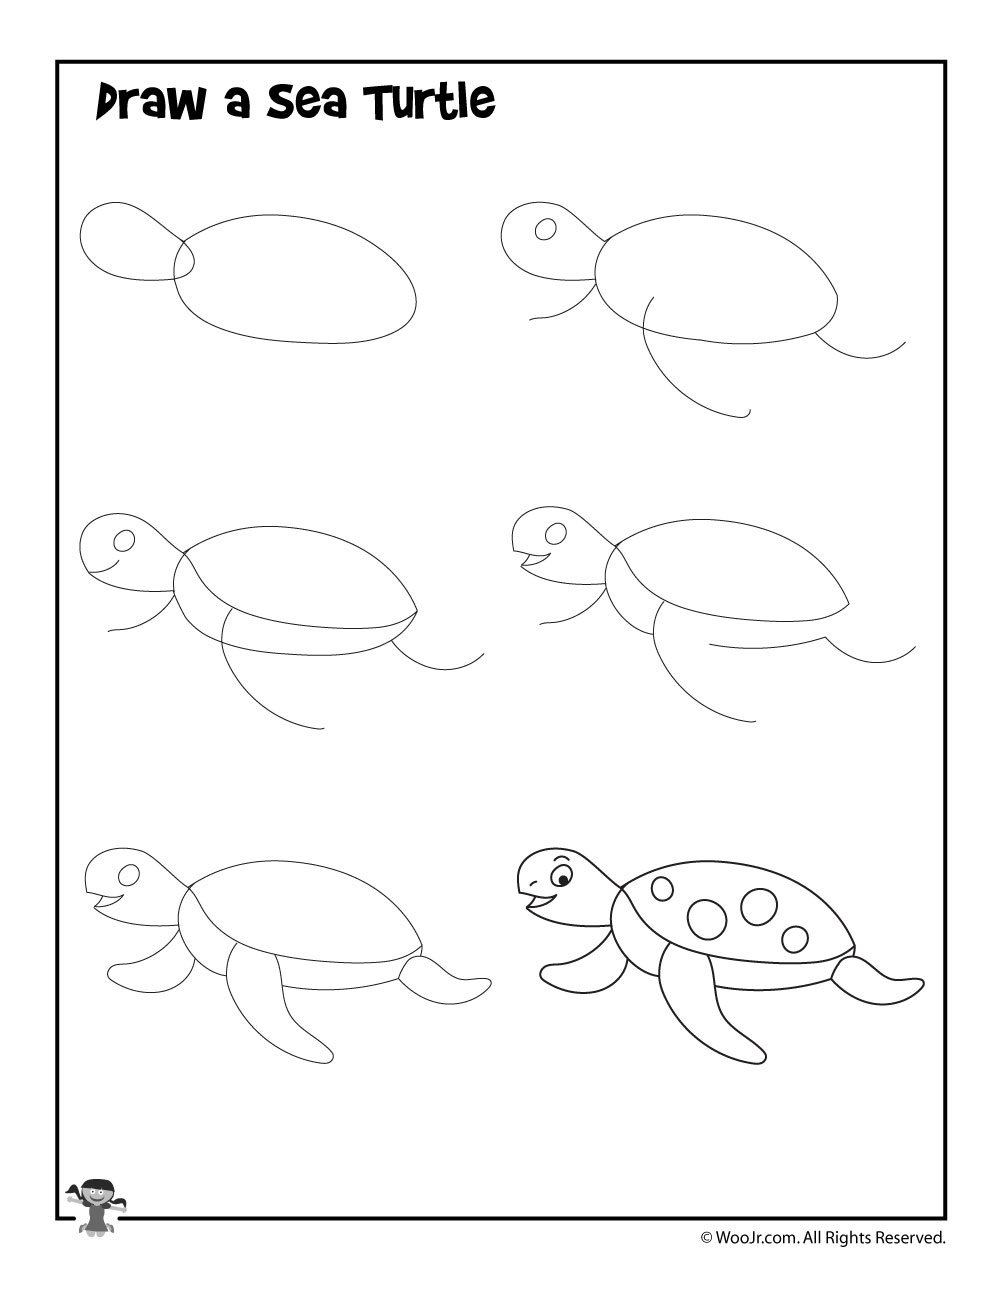 How to Draw a Sea Turtle | Woo! Jr. Kids Activities